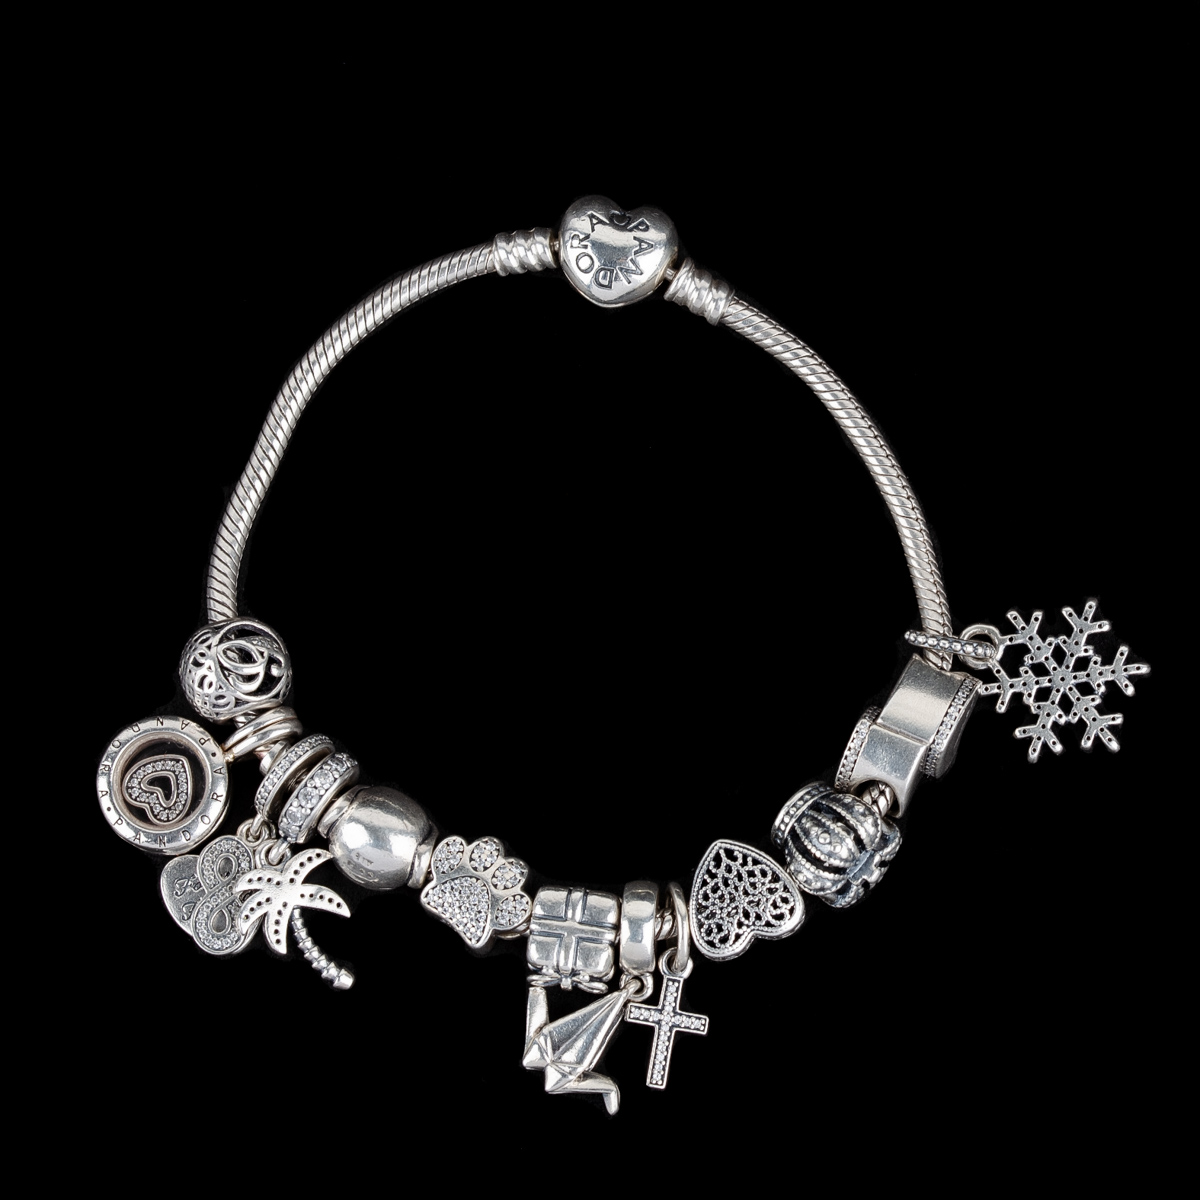 Moments Heart Clasp Snake Chain Bracelet with Fourteen Charms